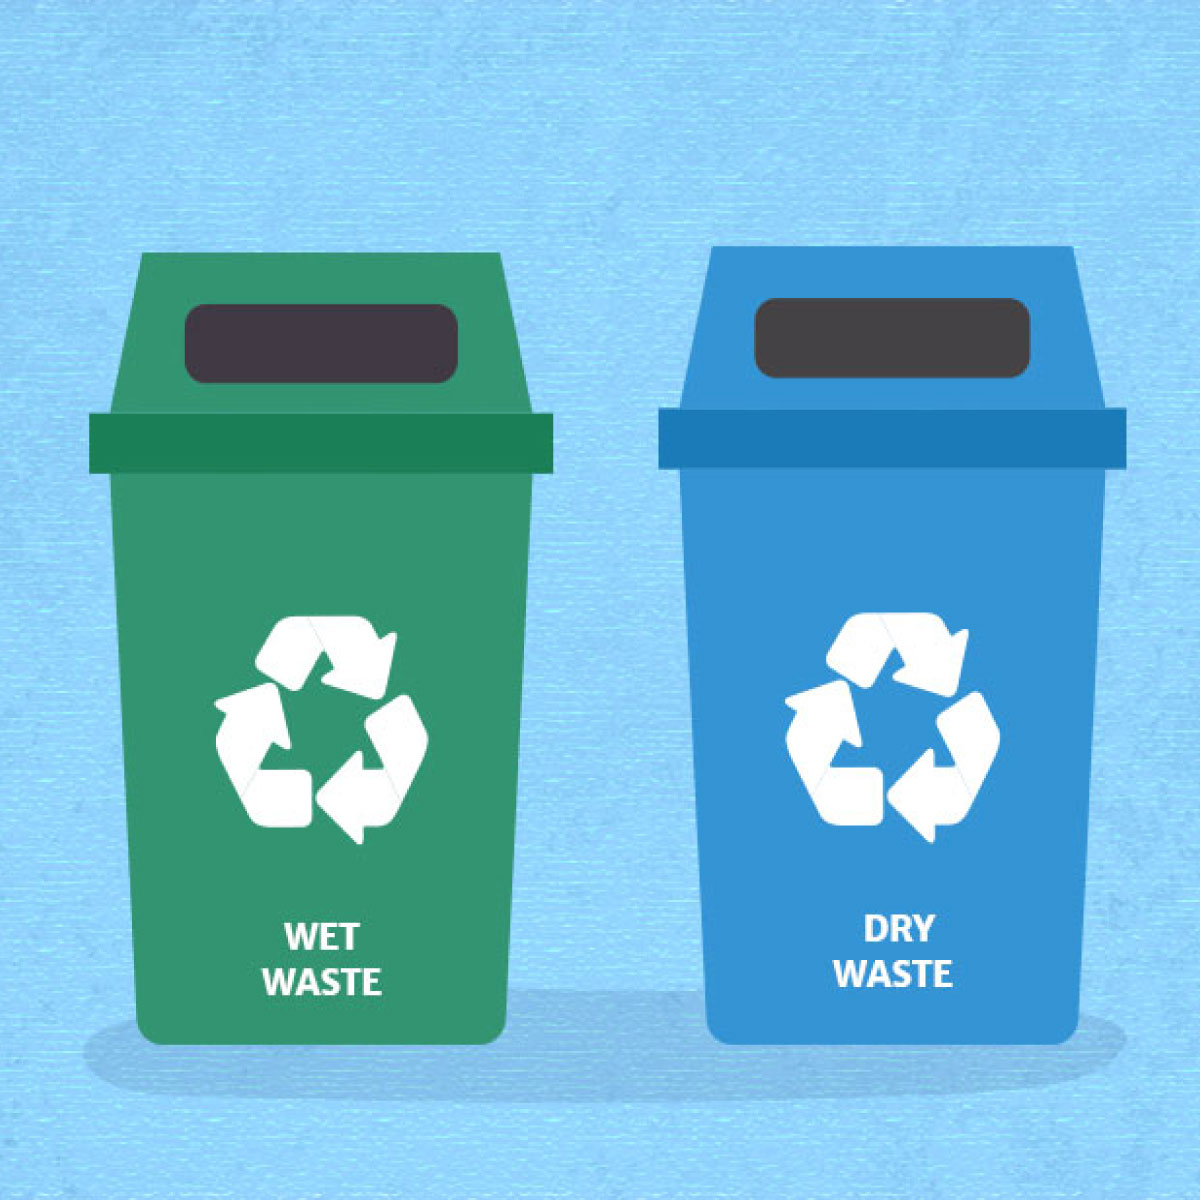 WET AND DRY WASTE SEGREGATION